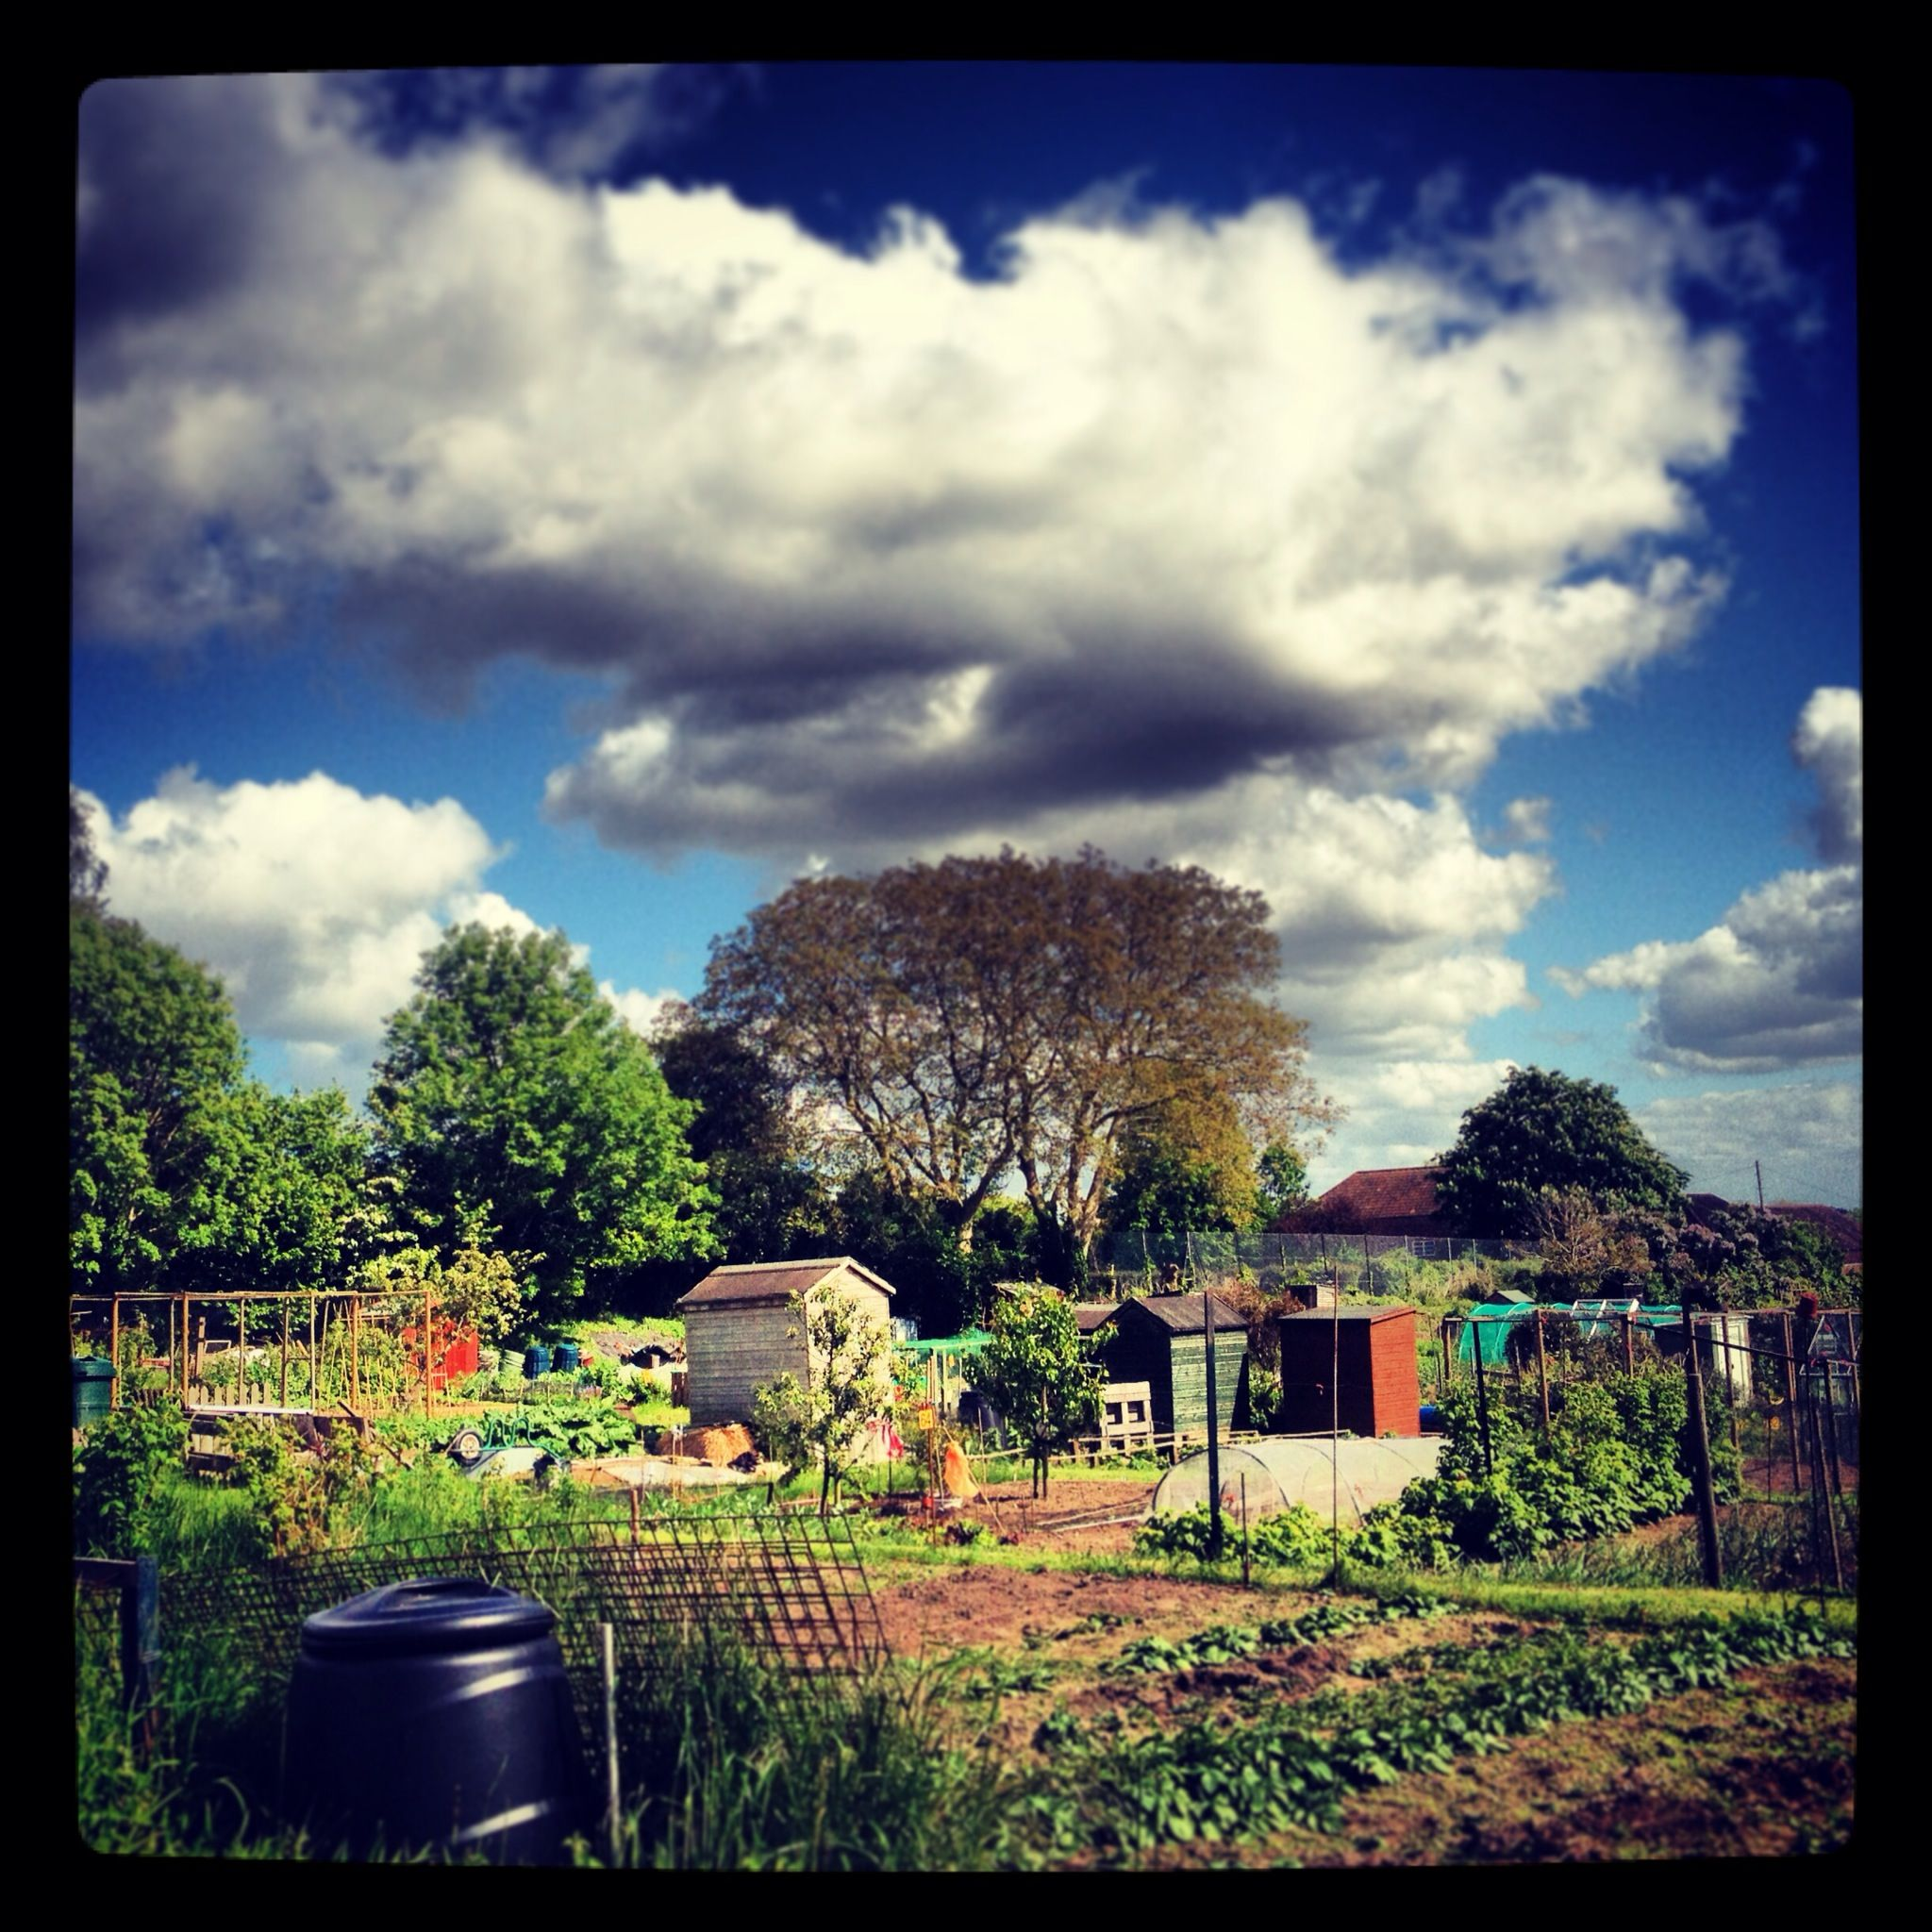 Getting back to nature at the allotment